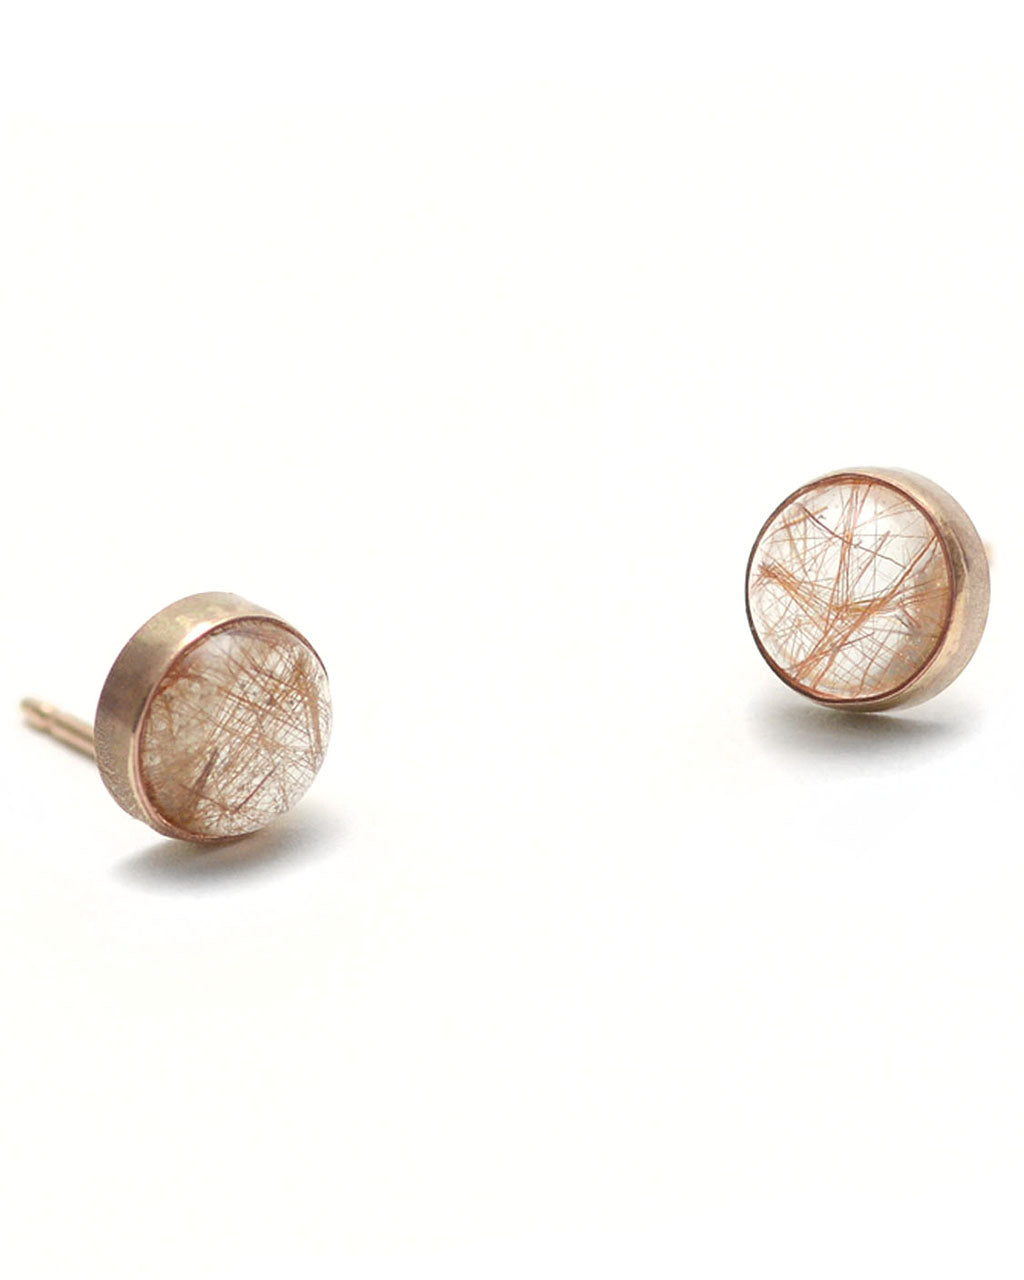 Copper Rutilated Quartz Gumdrop Stud Earrings | Favor Jewelry